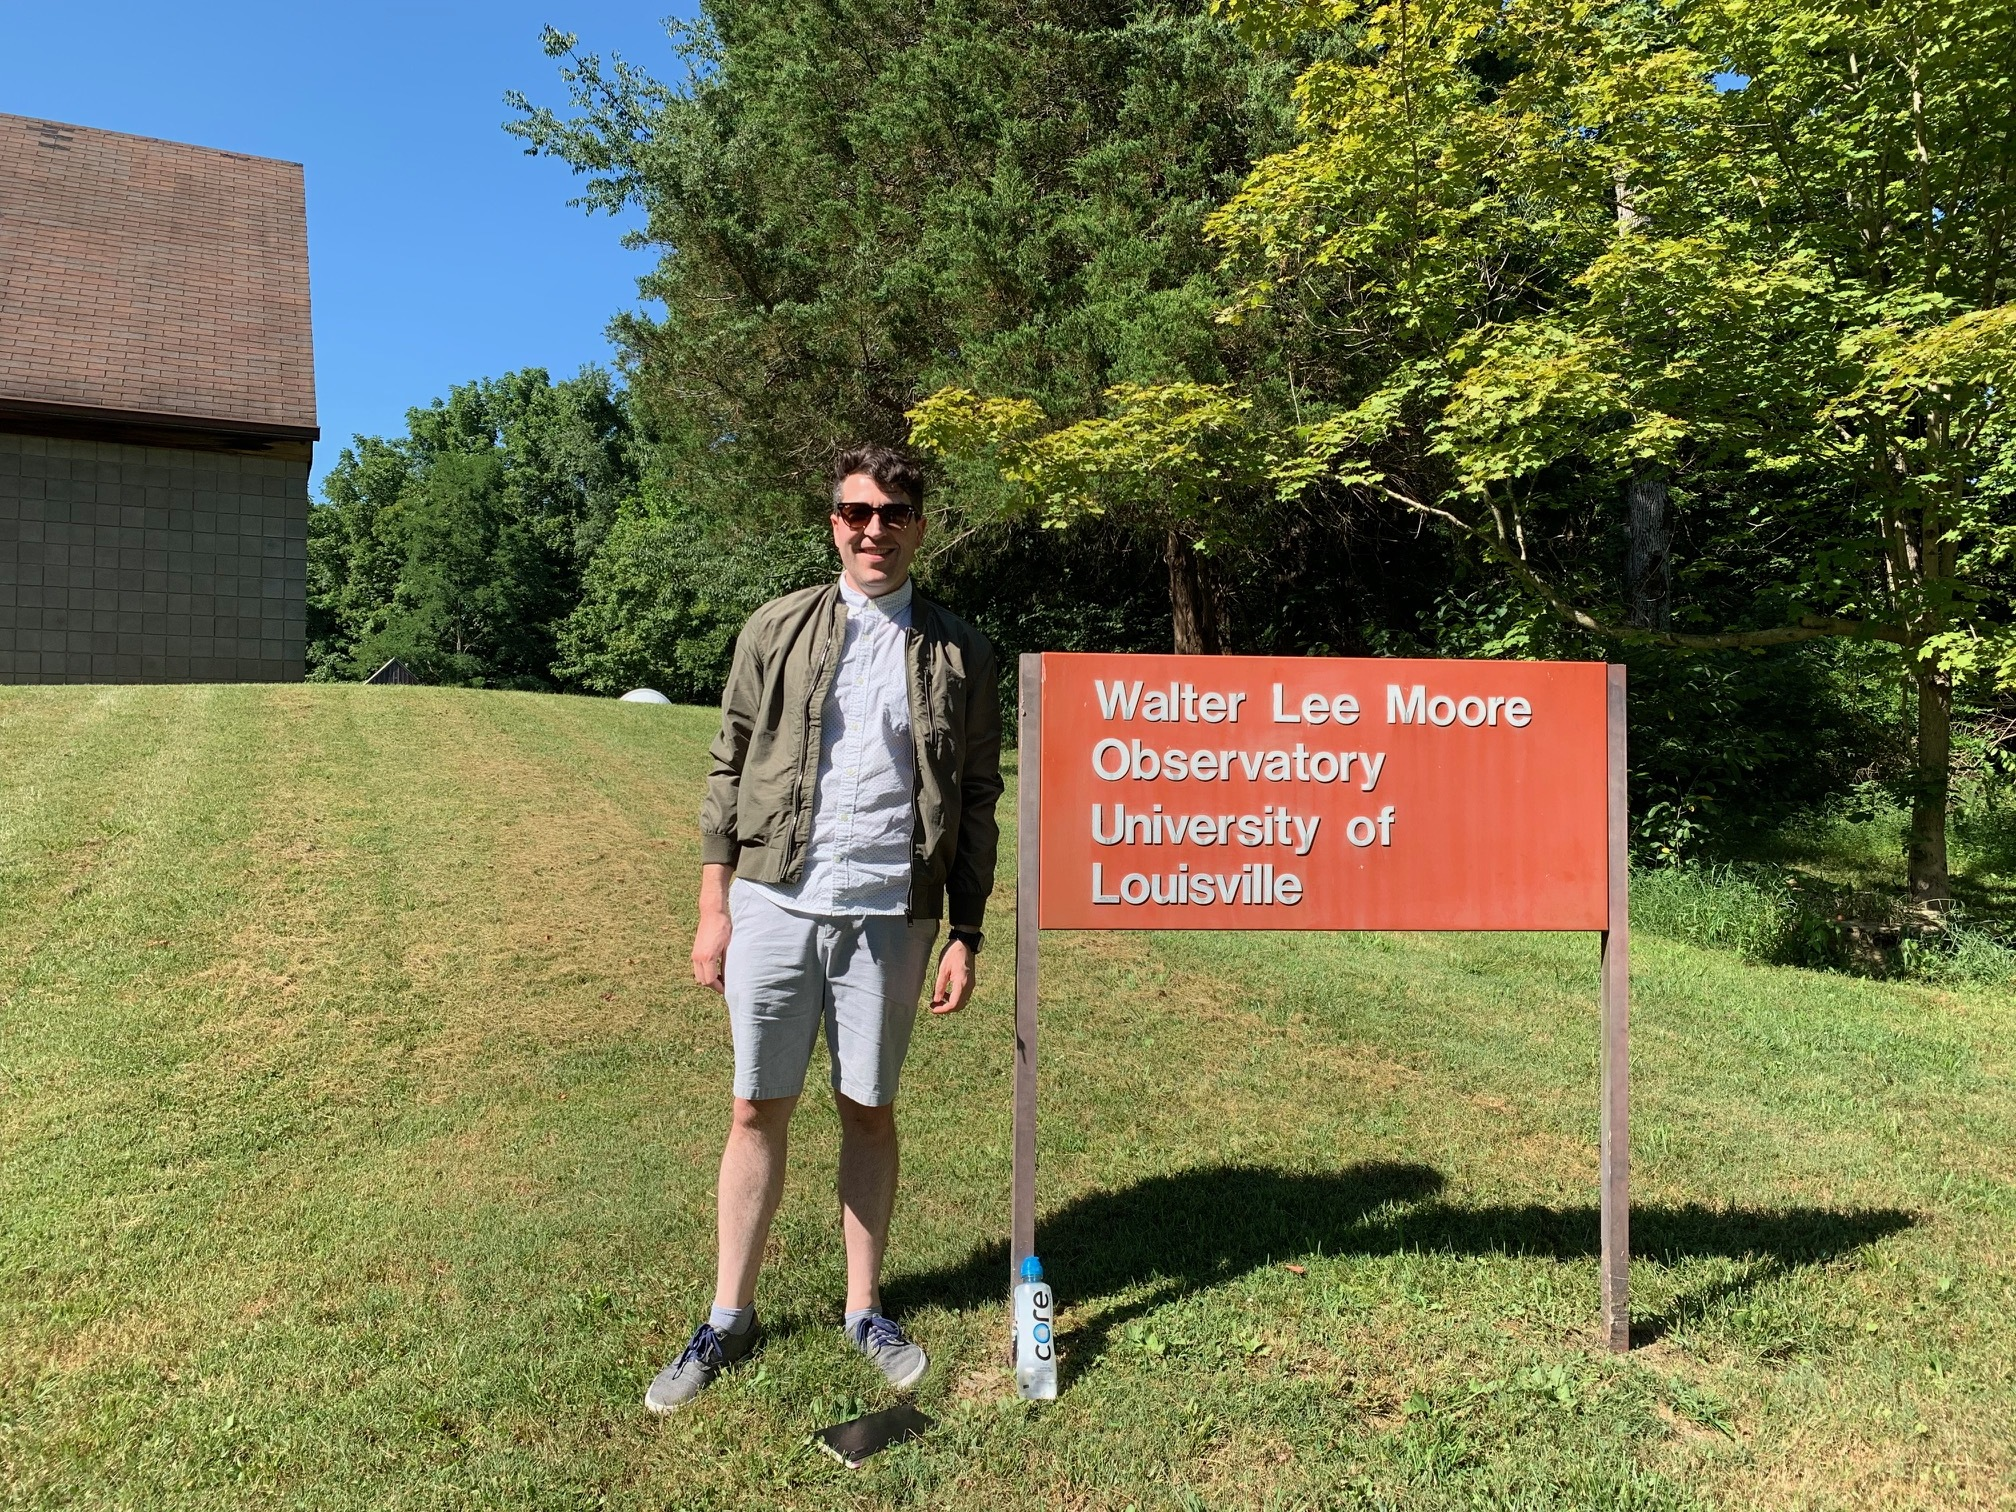 I just began my PhD in astrophysics. Here's a photo of my first experience visiting Moore Observatory in Louisville, KY. July 2019.